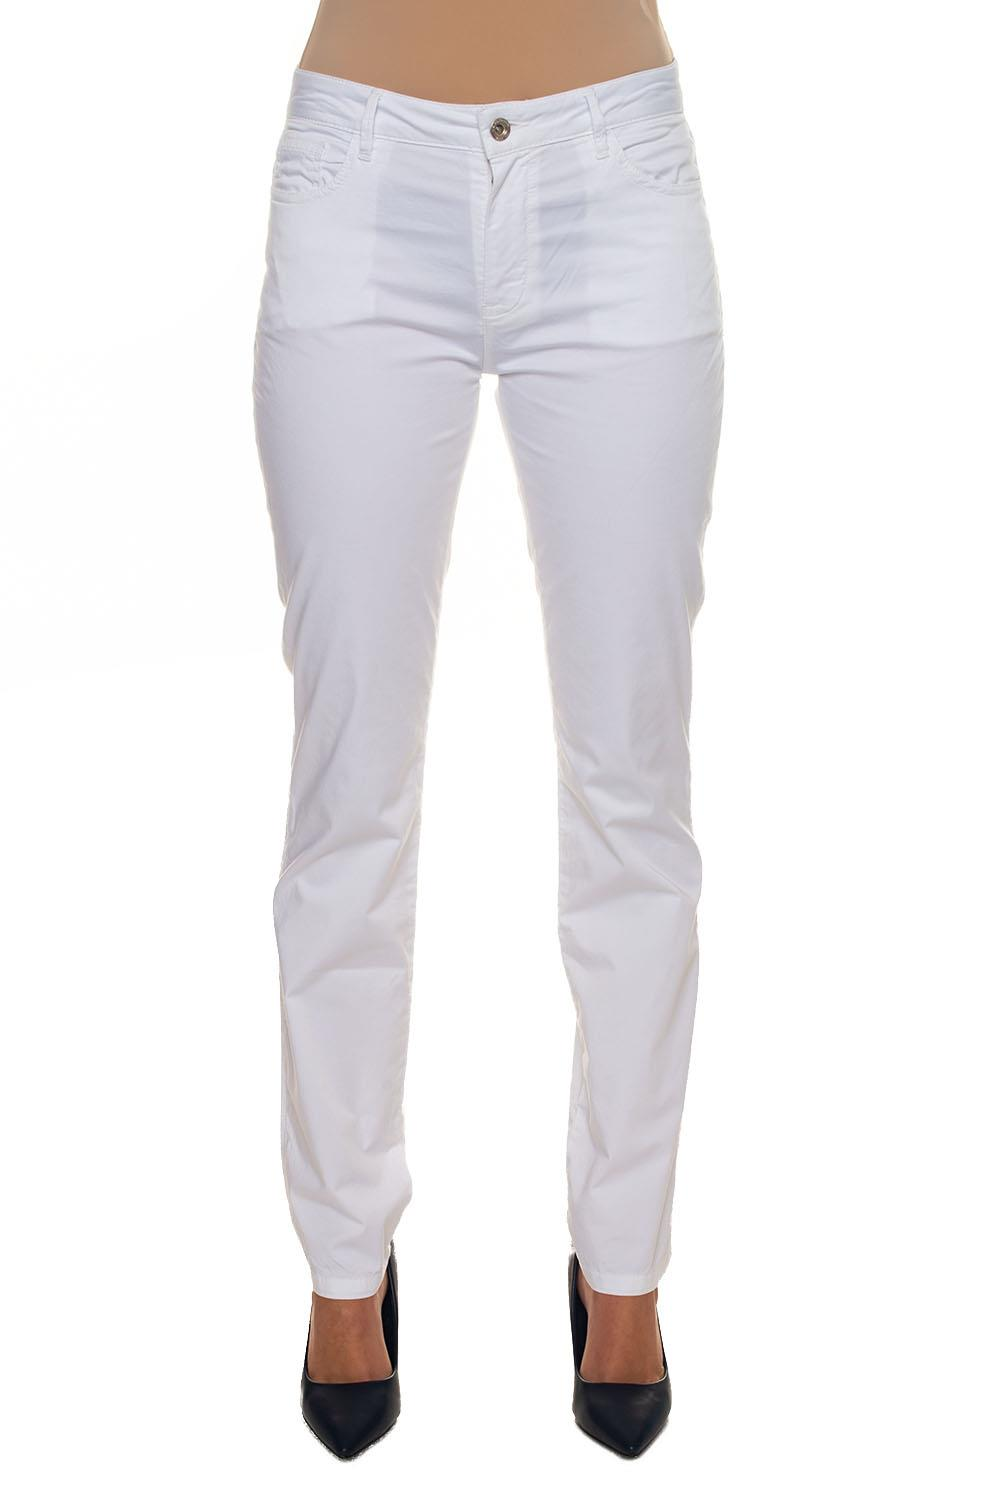 3484928ae0 Melissa Uspa 5 pocket jeans US Polo Assn Colore  bianco. Product   44053-44965400 Availability  In stock